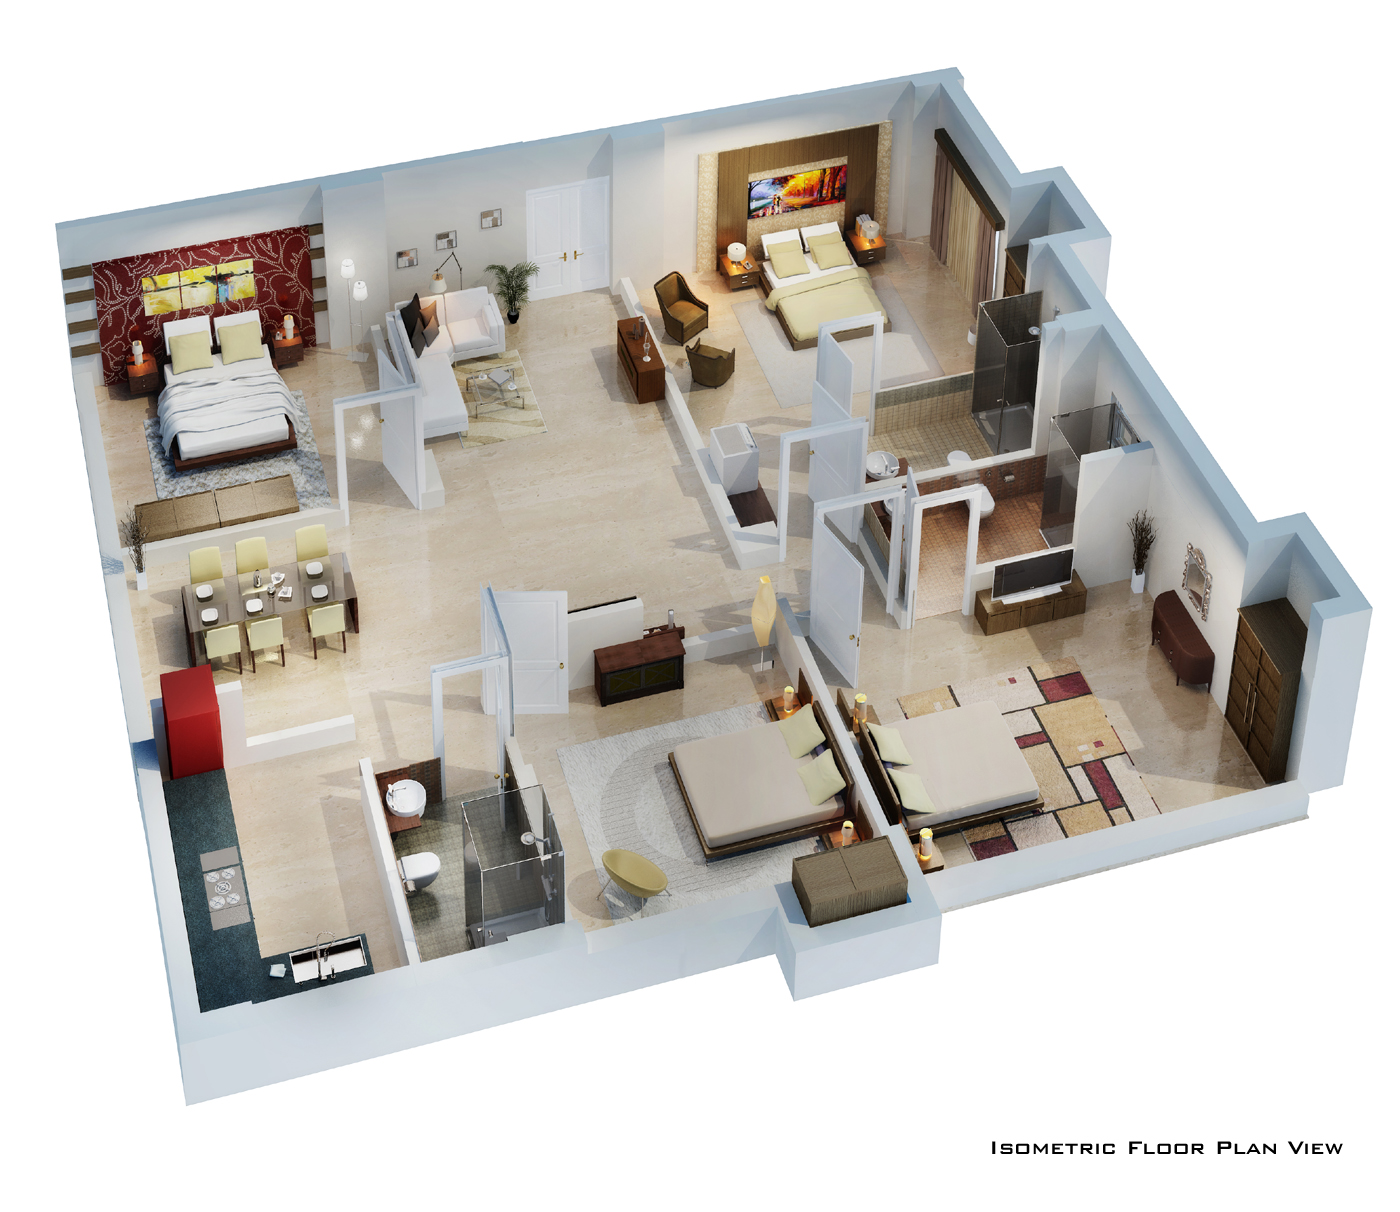 Isometric Floor Plan Render In 3d By Pradipta Seth At